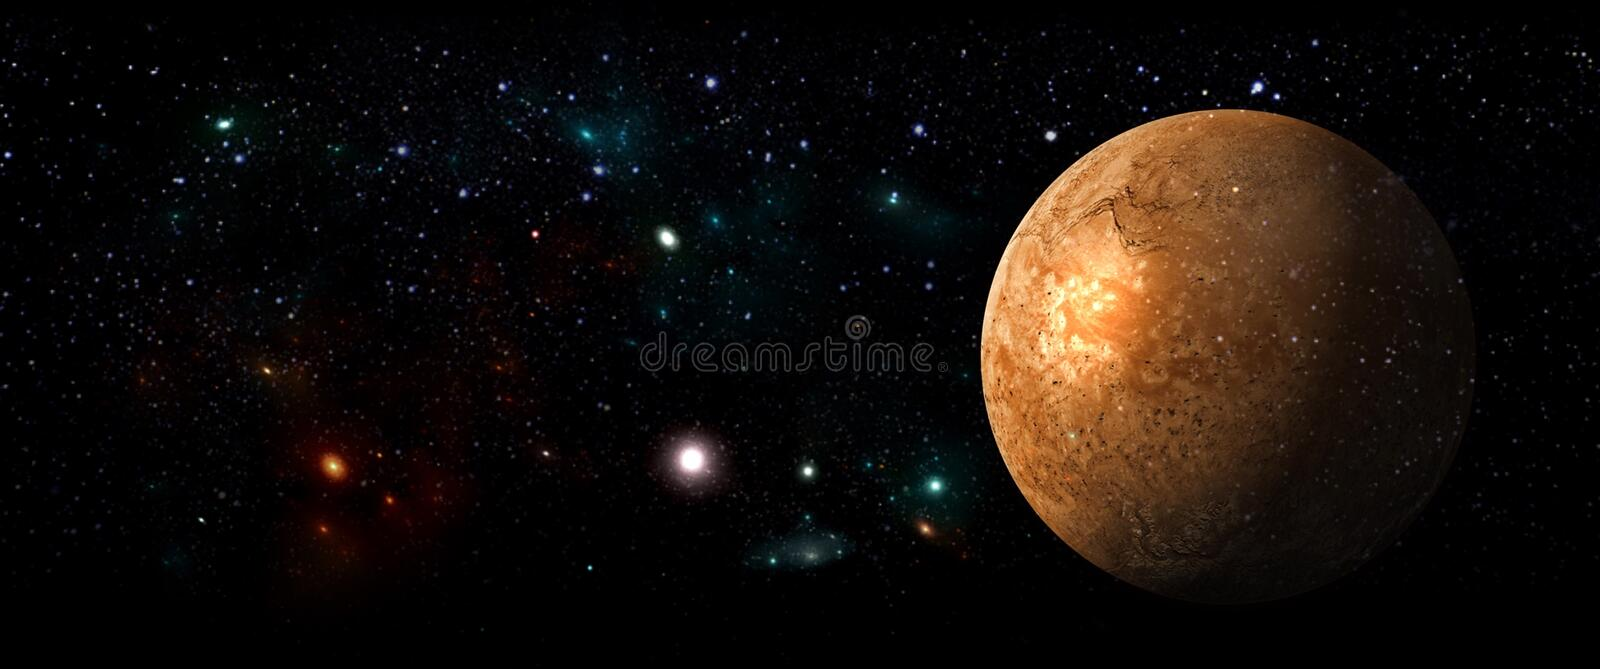 Planets and galaxies, science fiction wallpaper. Beauty of deep space. stock illustration